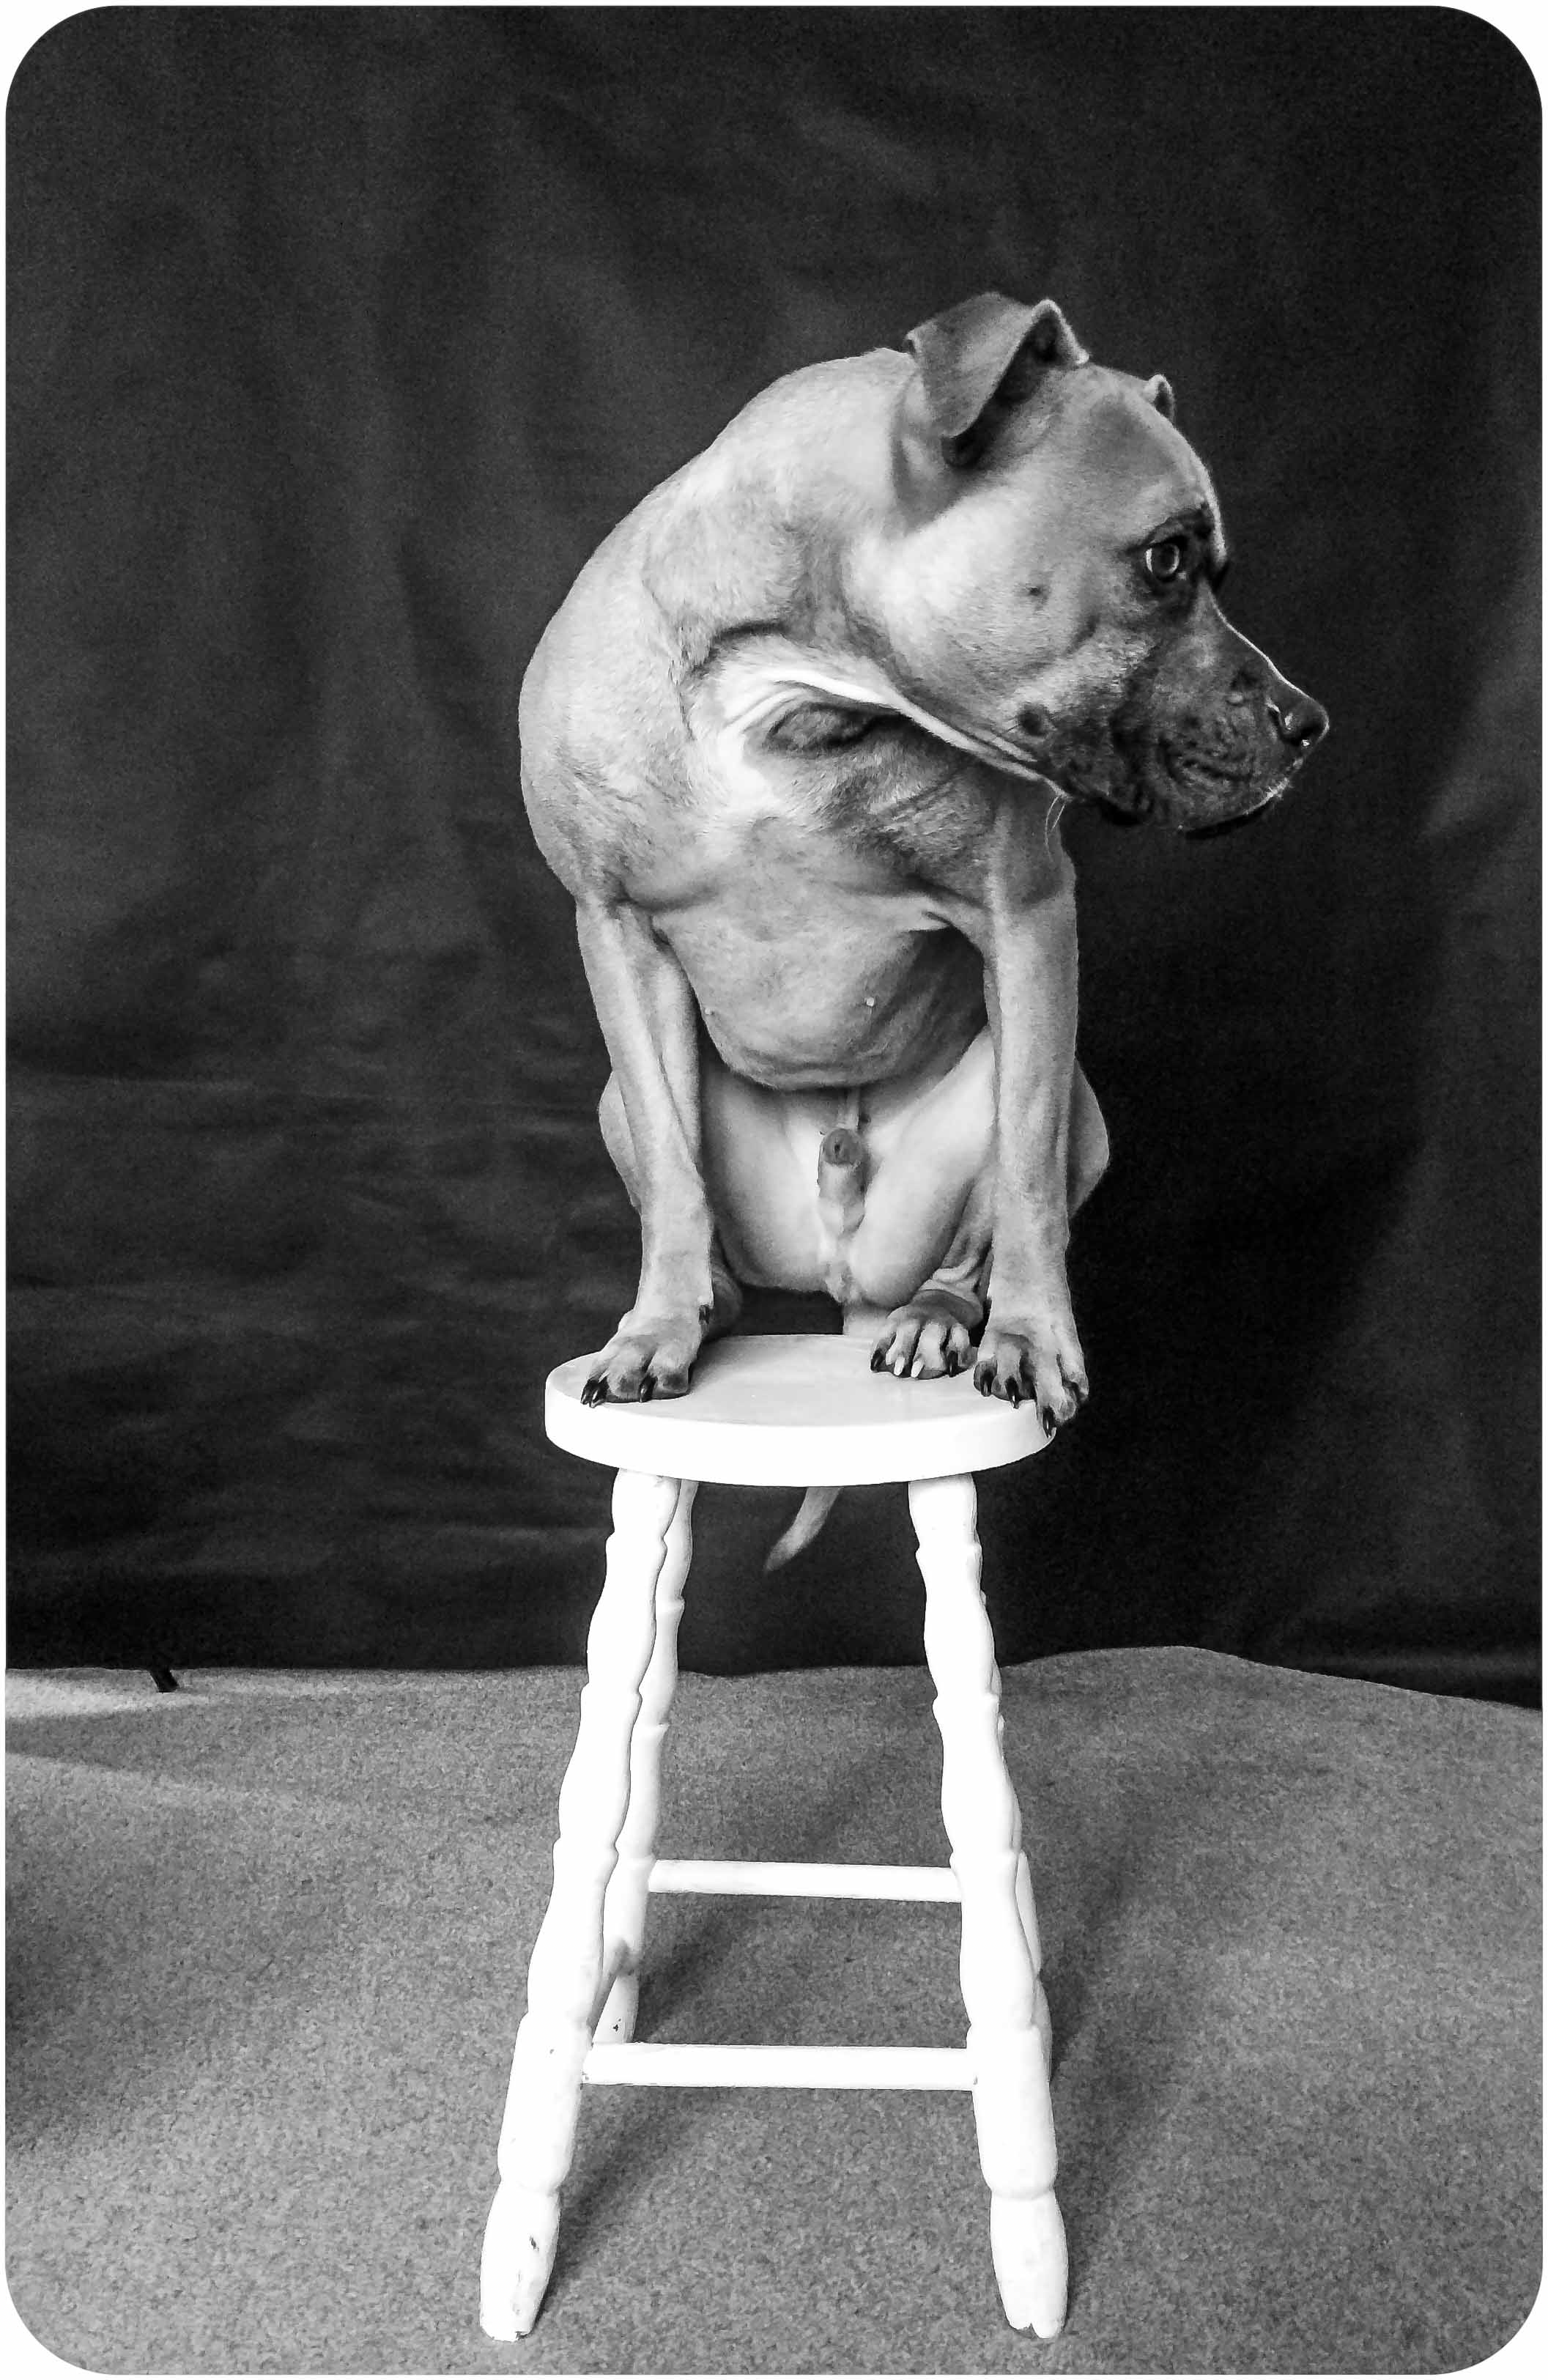 Staffy on a stool